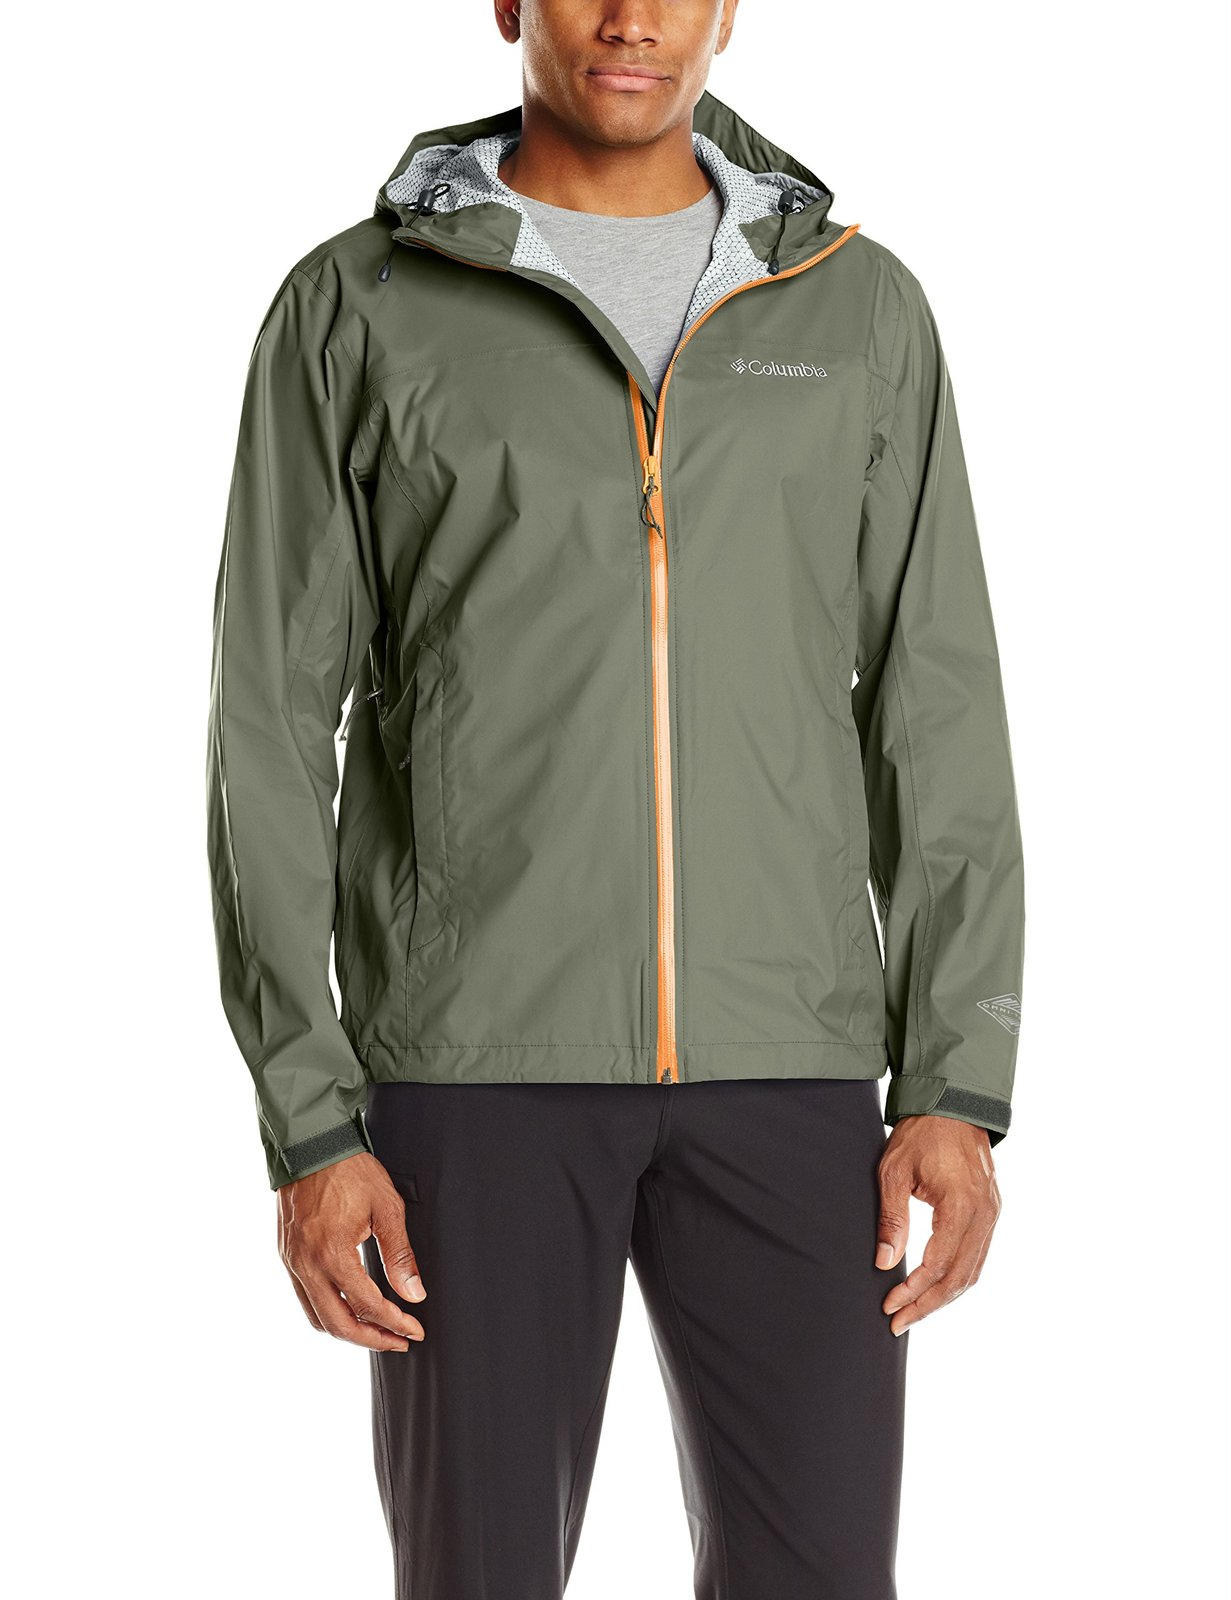 Columbia Men's Evapouration Jacket, Cypress, Large